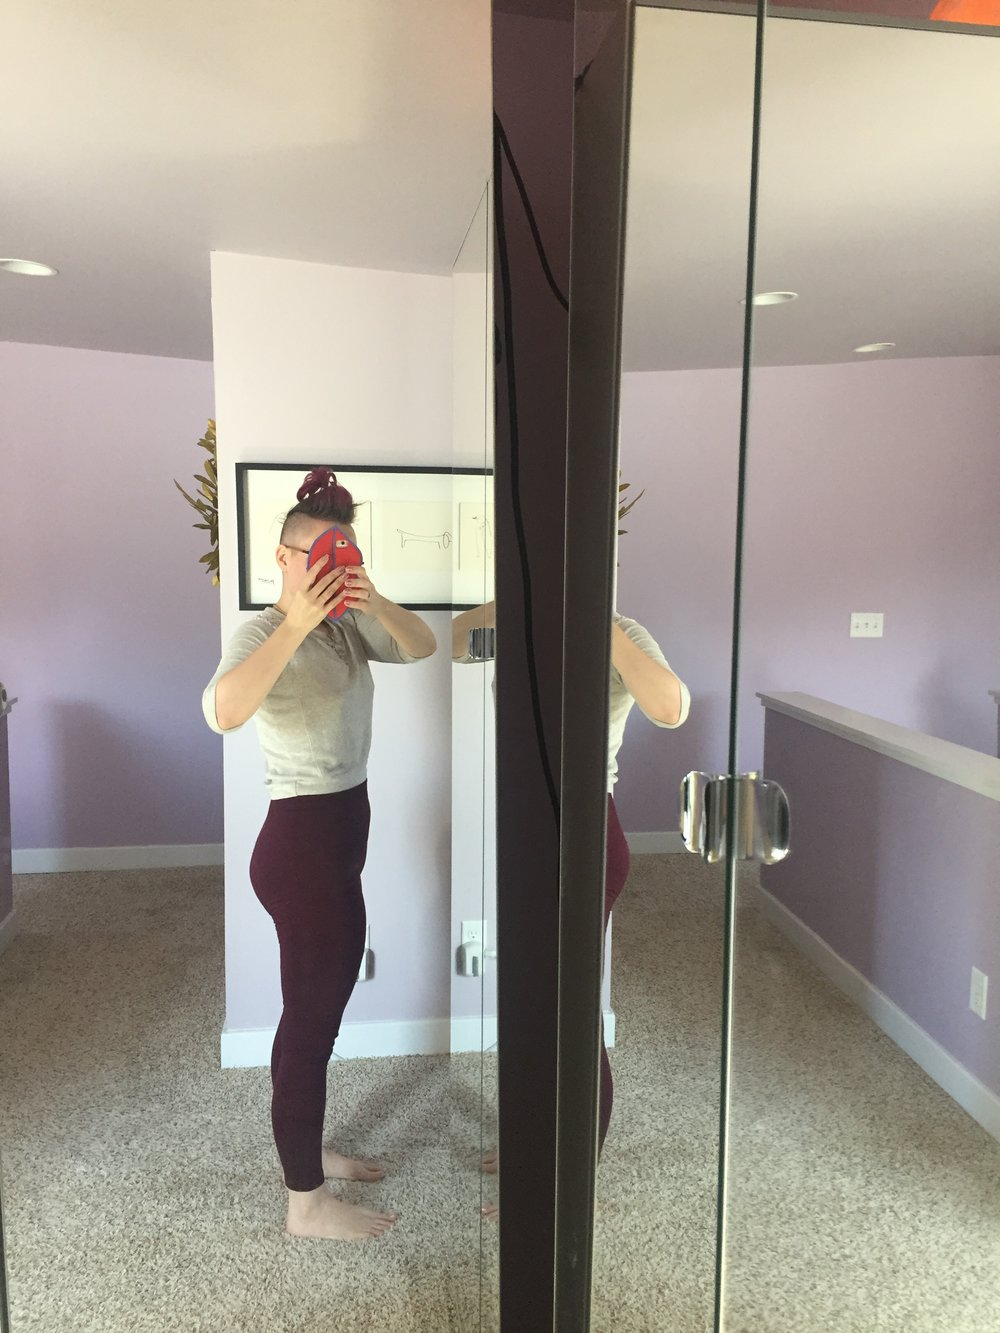 March 25, 2018. After working out at home. My butt has returned.